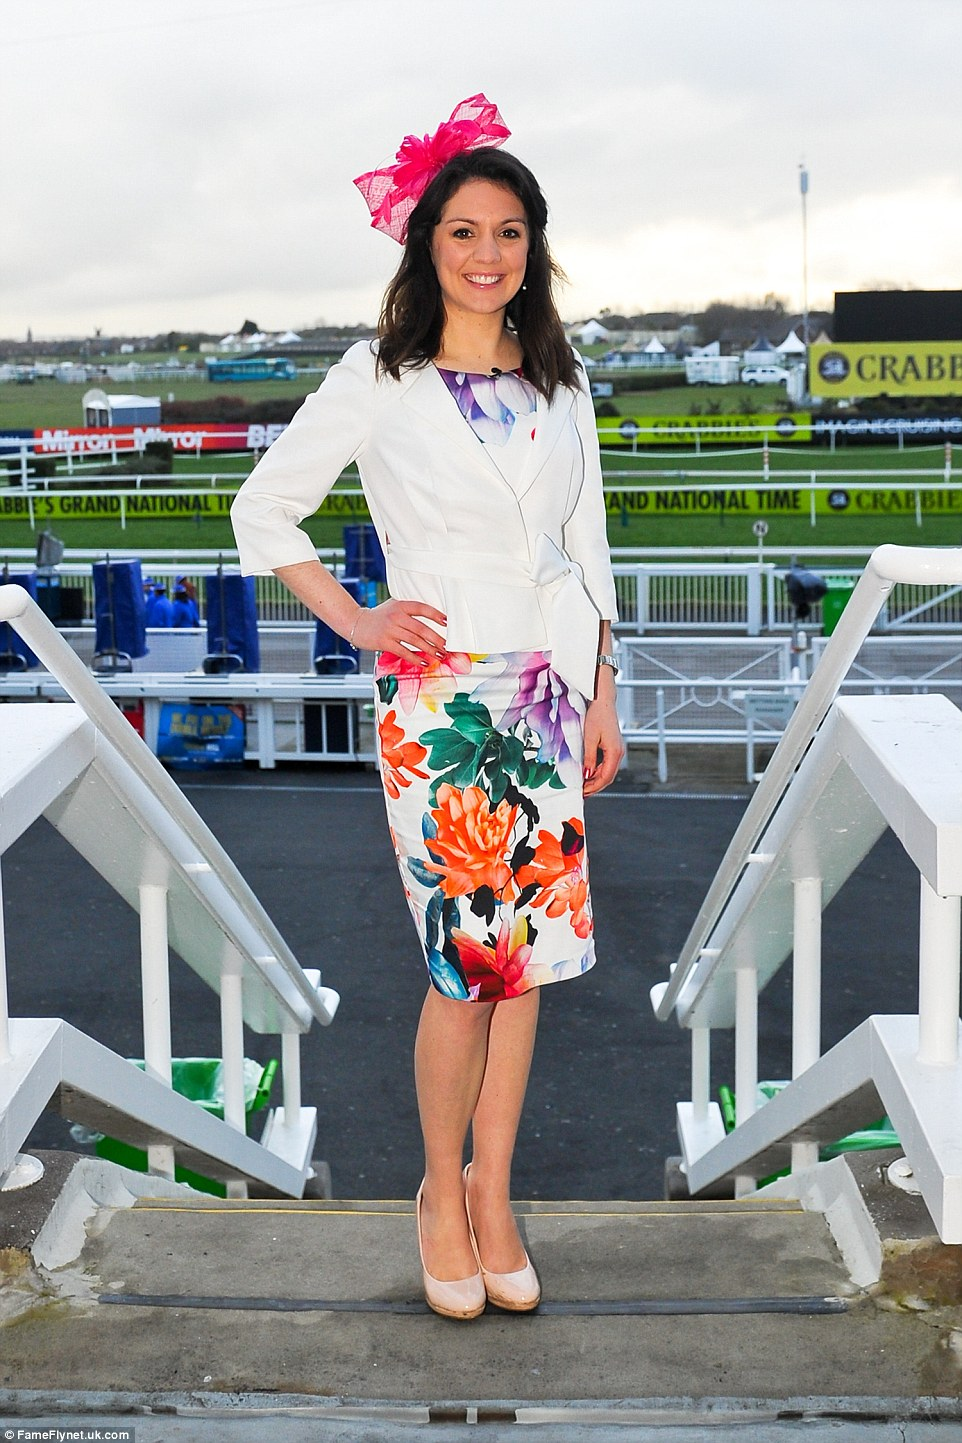 Good Morning Britain's weather girl Laura Tobin at day two of the Aintree Festival in Merseyside